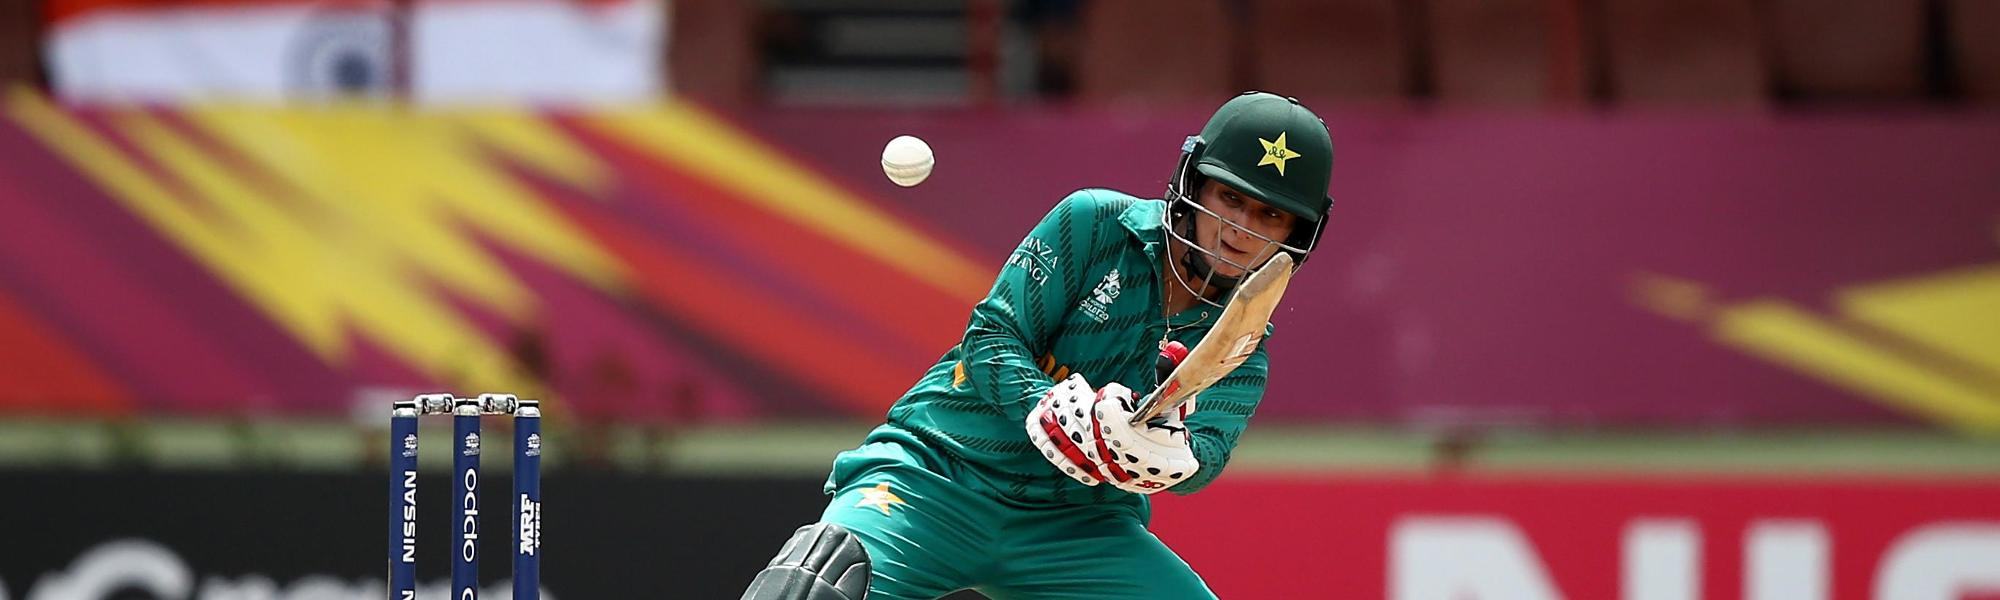 Bismah Mahroof of Pakistan bats during the ICC Women's World T20 2018 match between India and Pakistan at Guyana National Stadium on November 11, 2018 in Providence, Guyana.